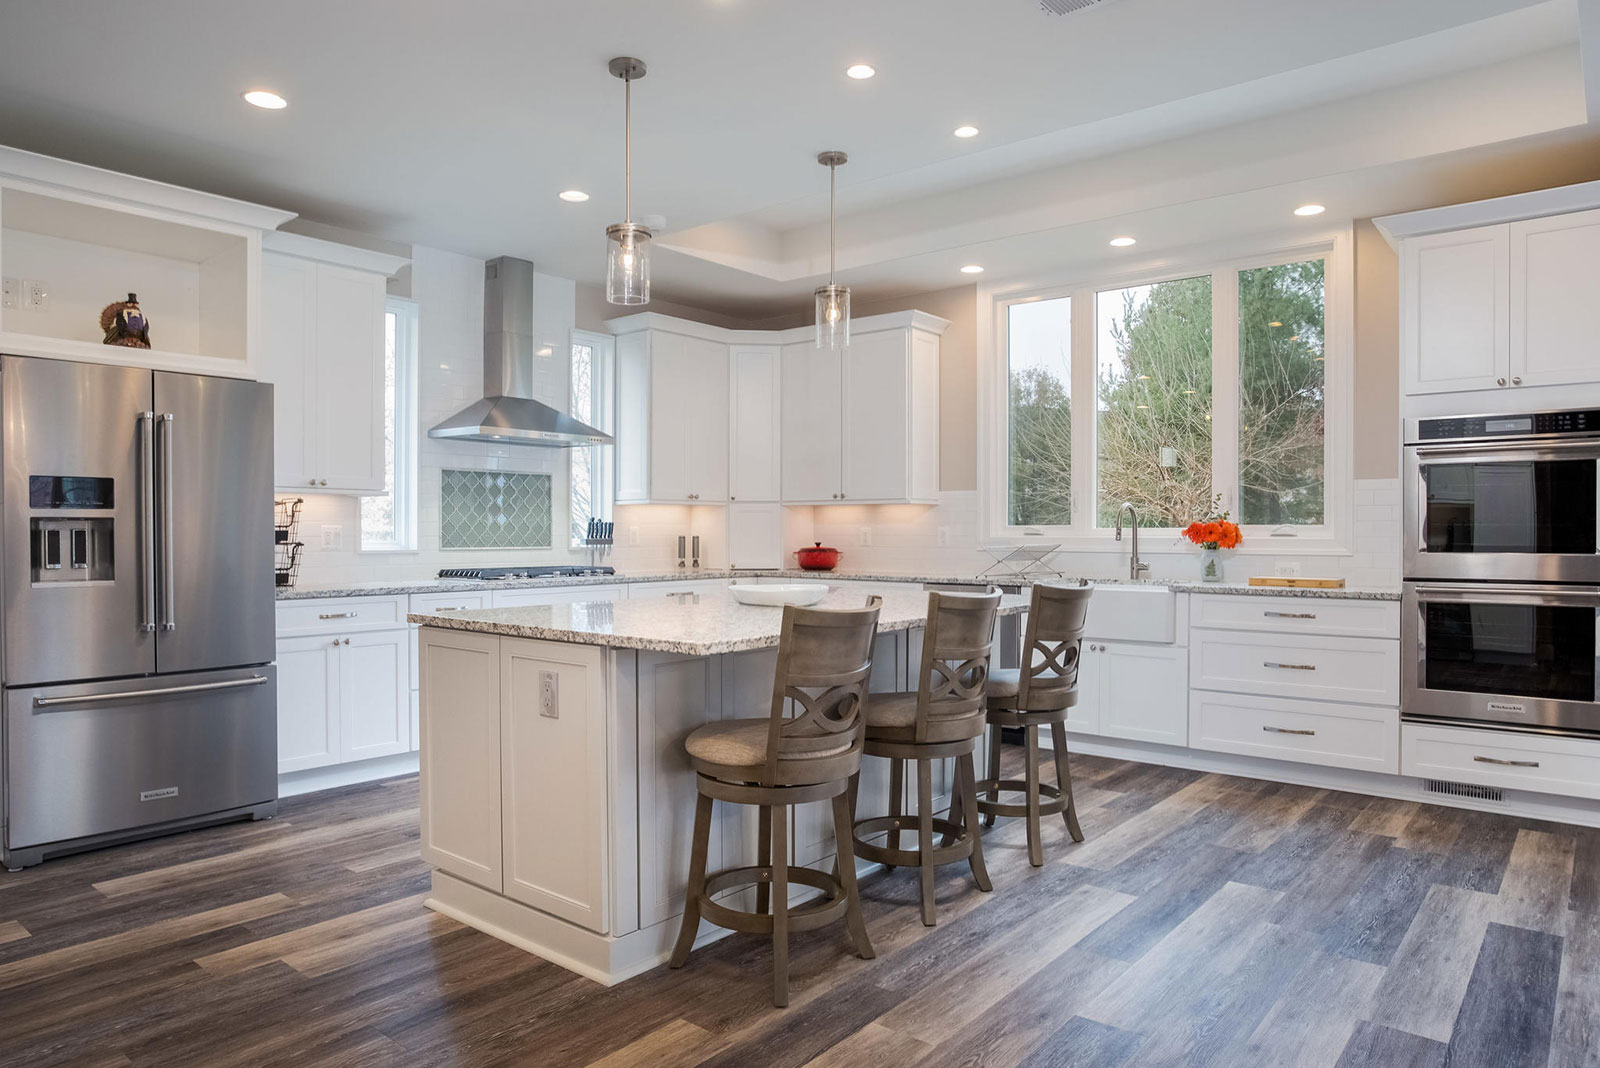 Reno Of The Month Kitchen Design Trends You Need To Know About Reston Now